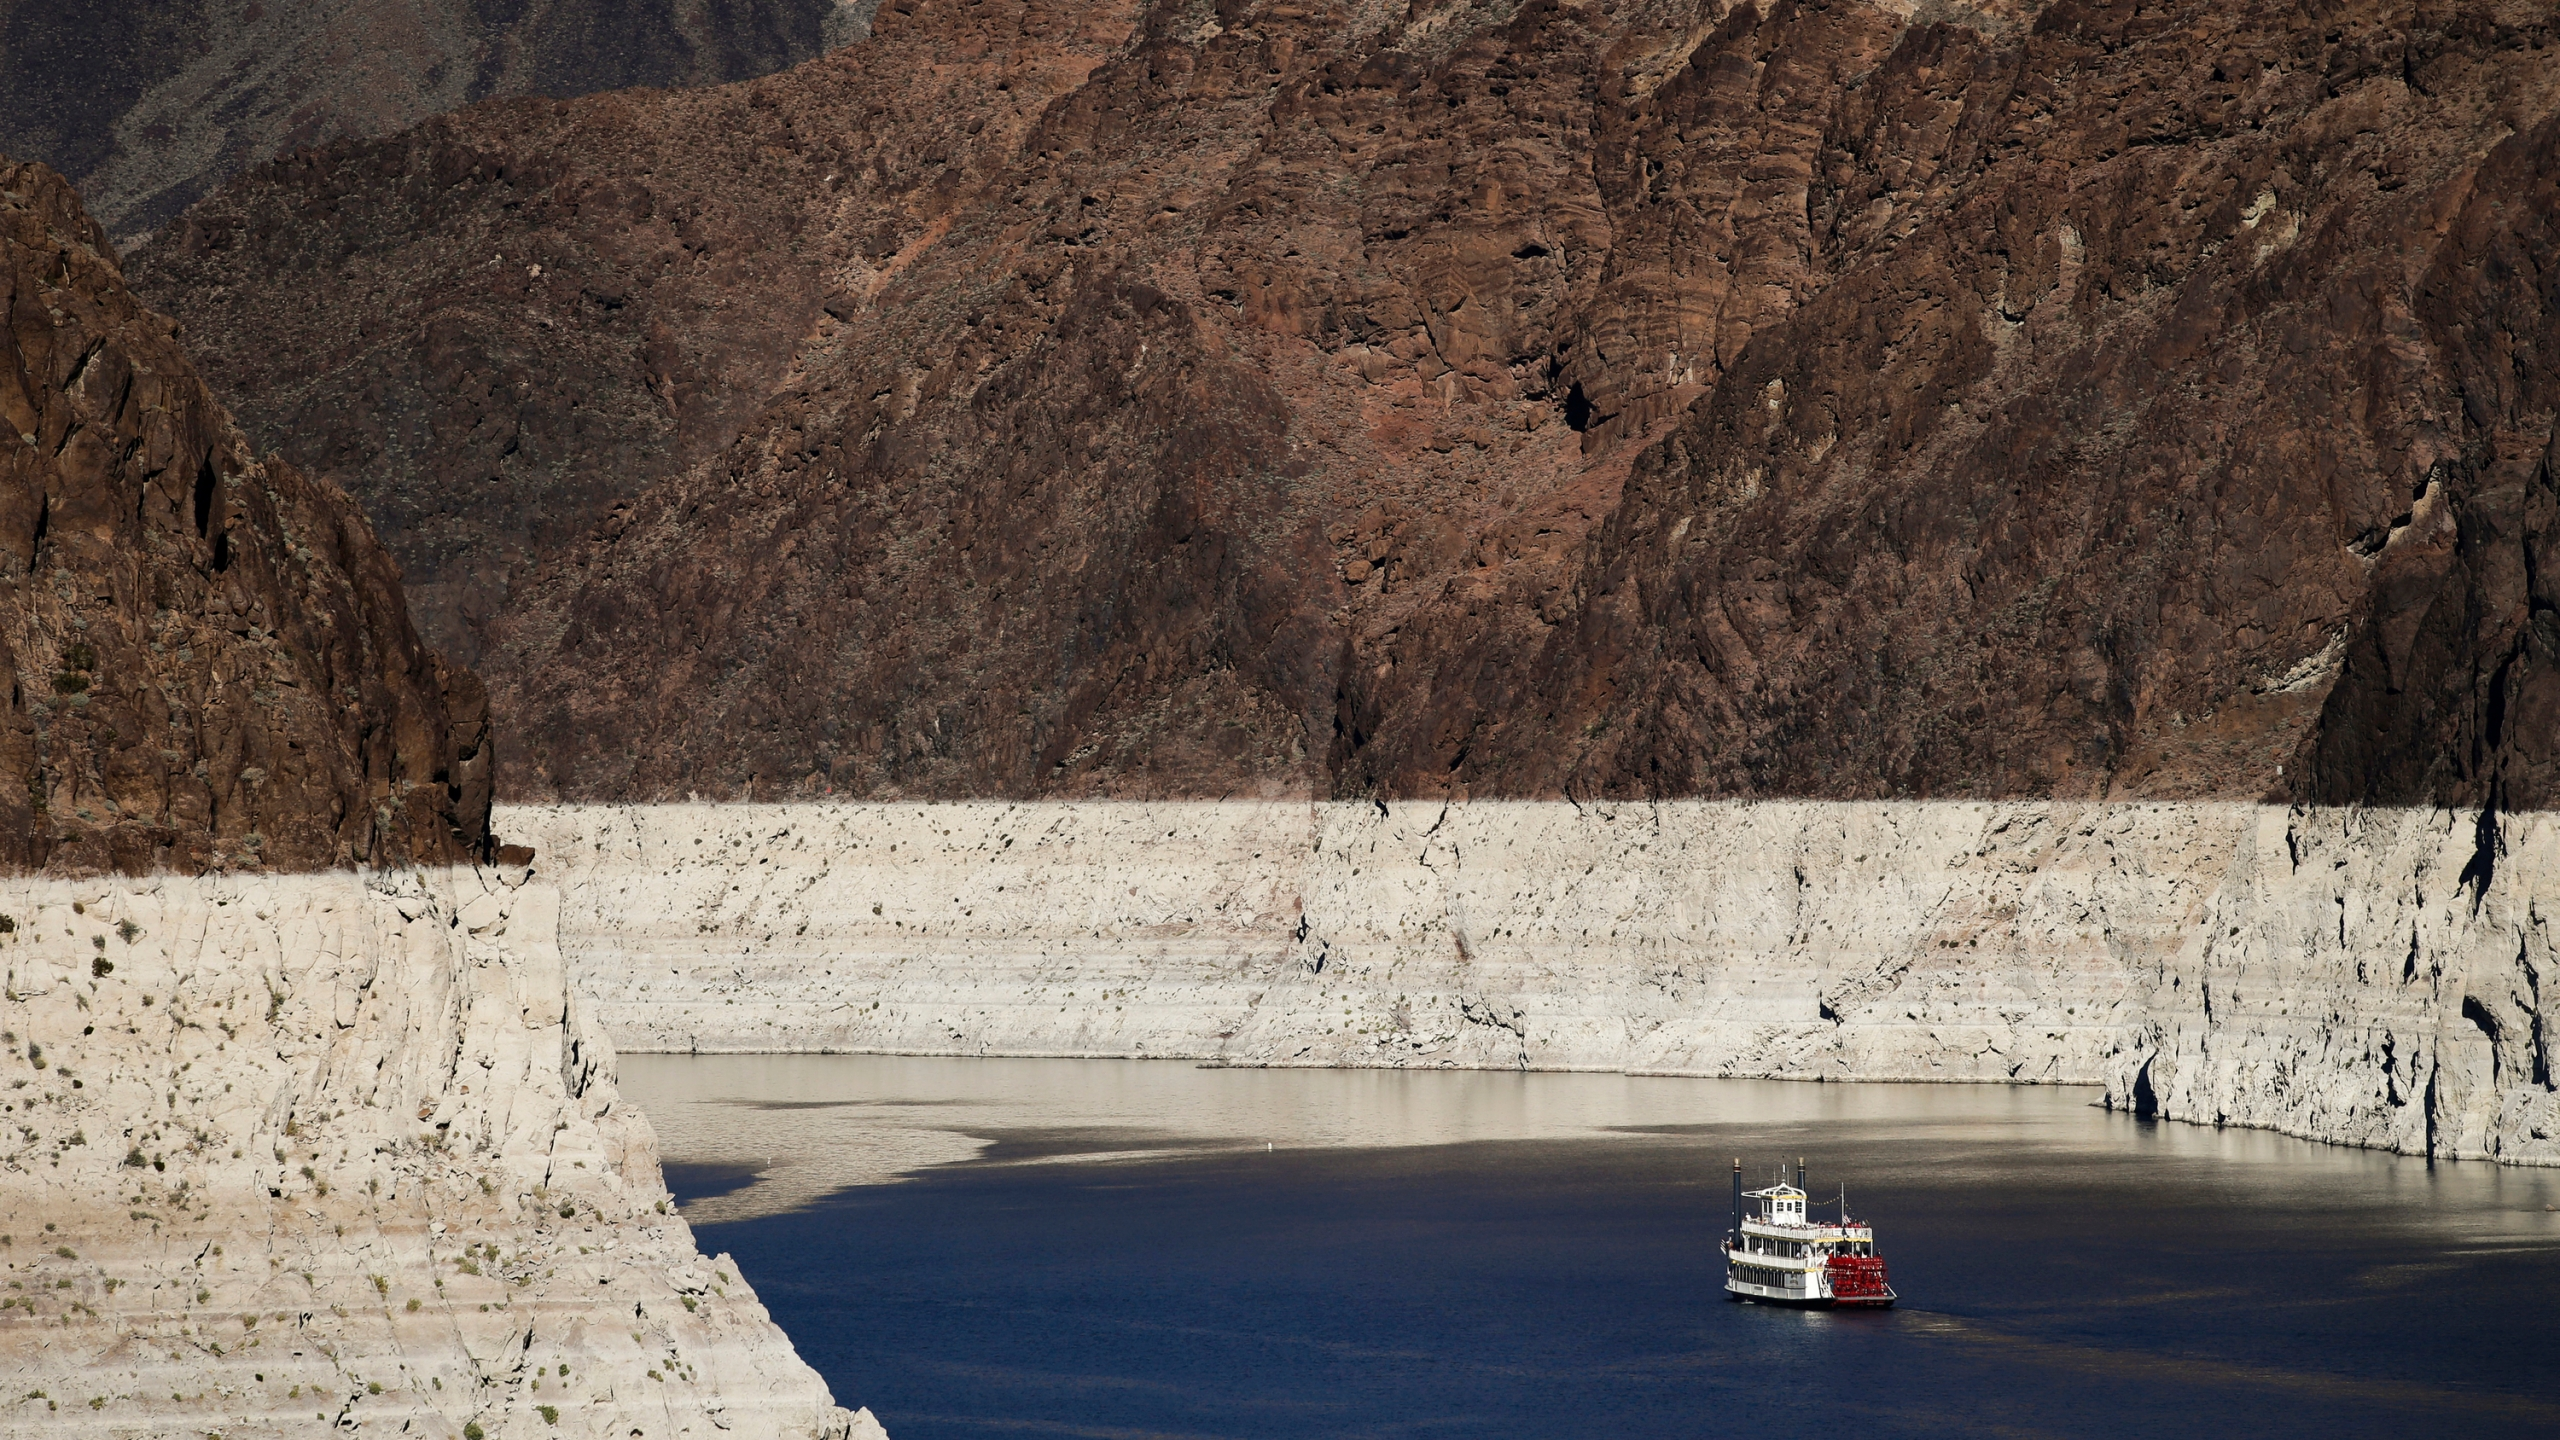 In this Oct. 14, 2015, file photo, a riverboat glides through Lake Mead on the Colorado River at Hoover Dam near Boulder City, Nev. The key reservoir on the Colorado River is expected to match its record low level on Thursday, June 10, 2021. The dropping surface elevation of Lake Mead along the Arizona-Nevada border is the another sign of the drought's grip on the region. (AP Photo/Jae C. Hong, File)